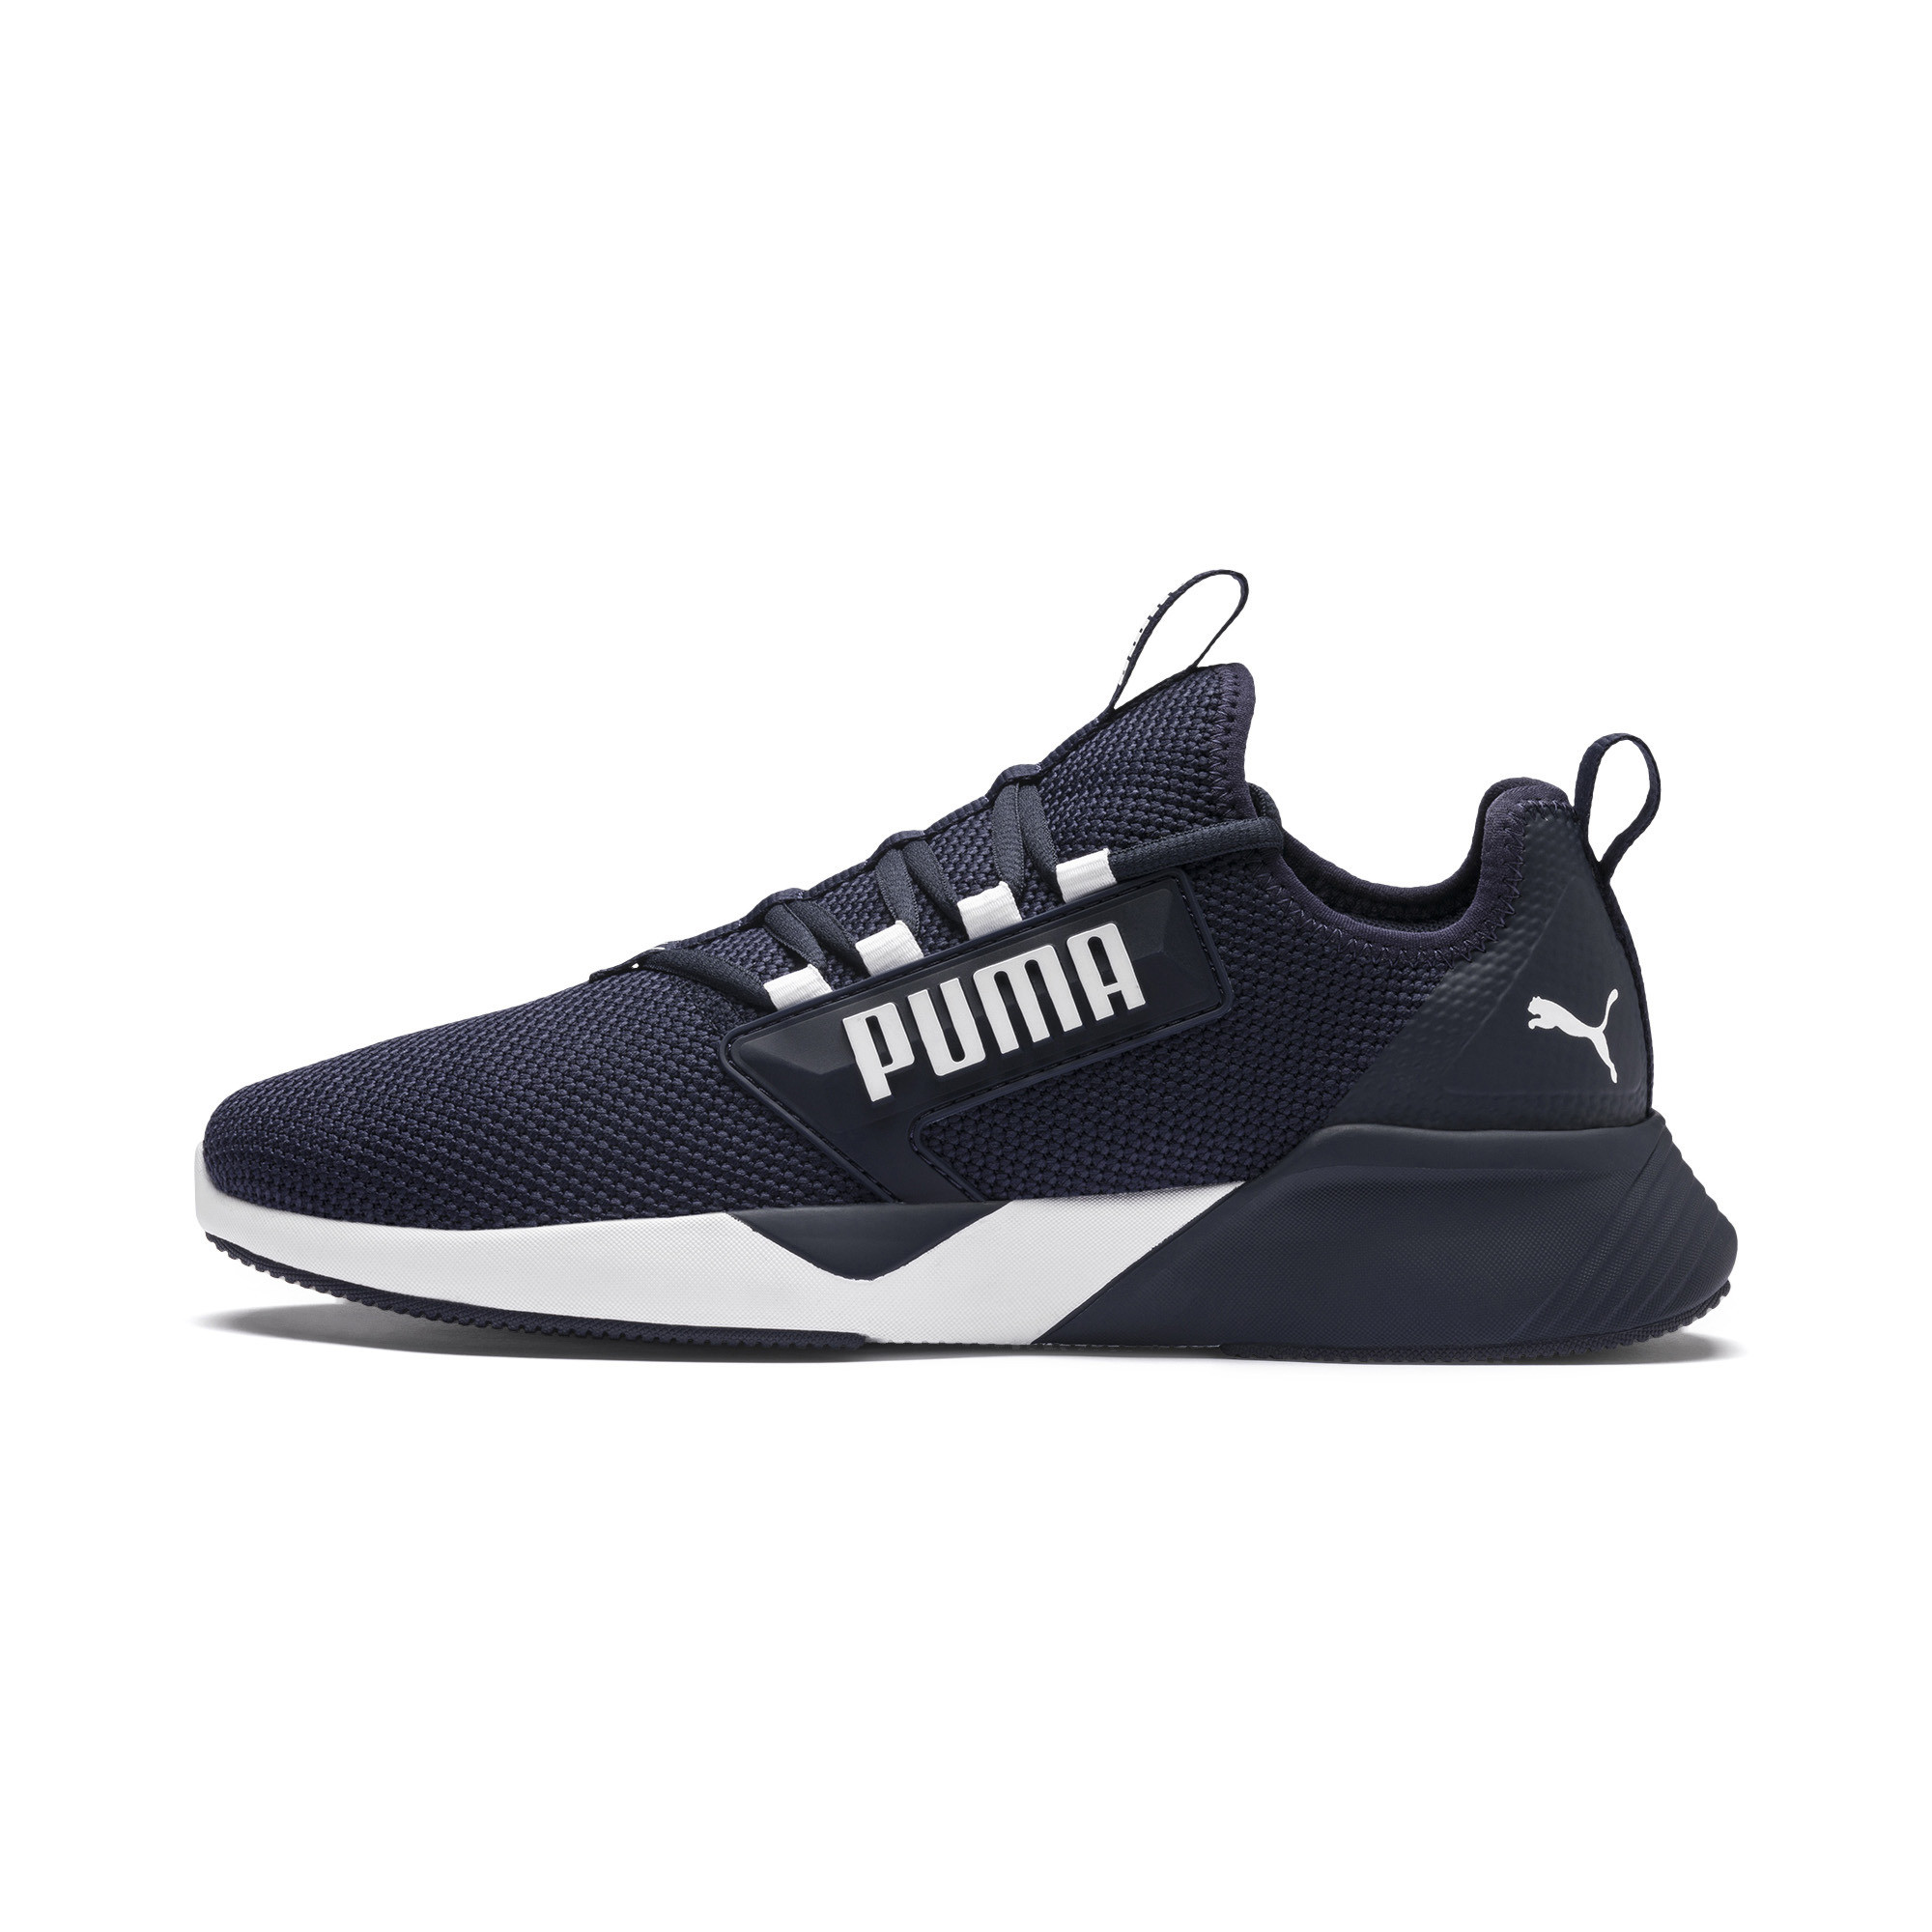 PUMA-Men-039-s-Retaliate-Training-Shoes thumbnail 12